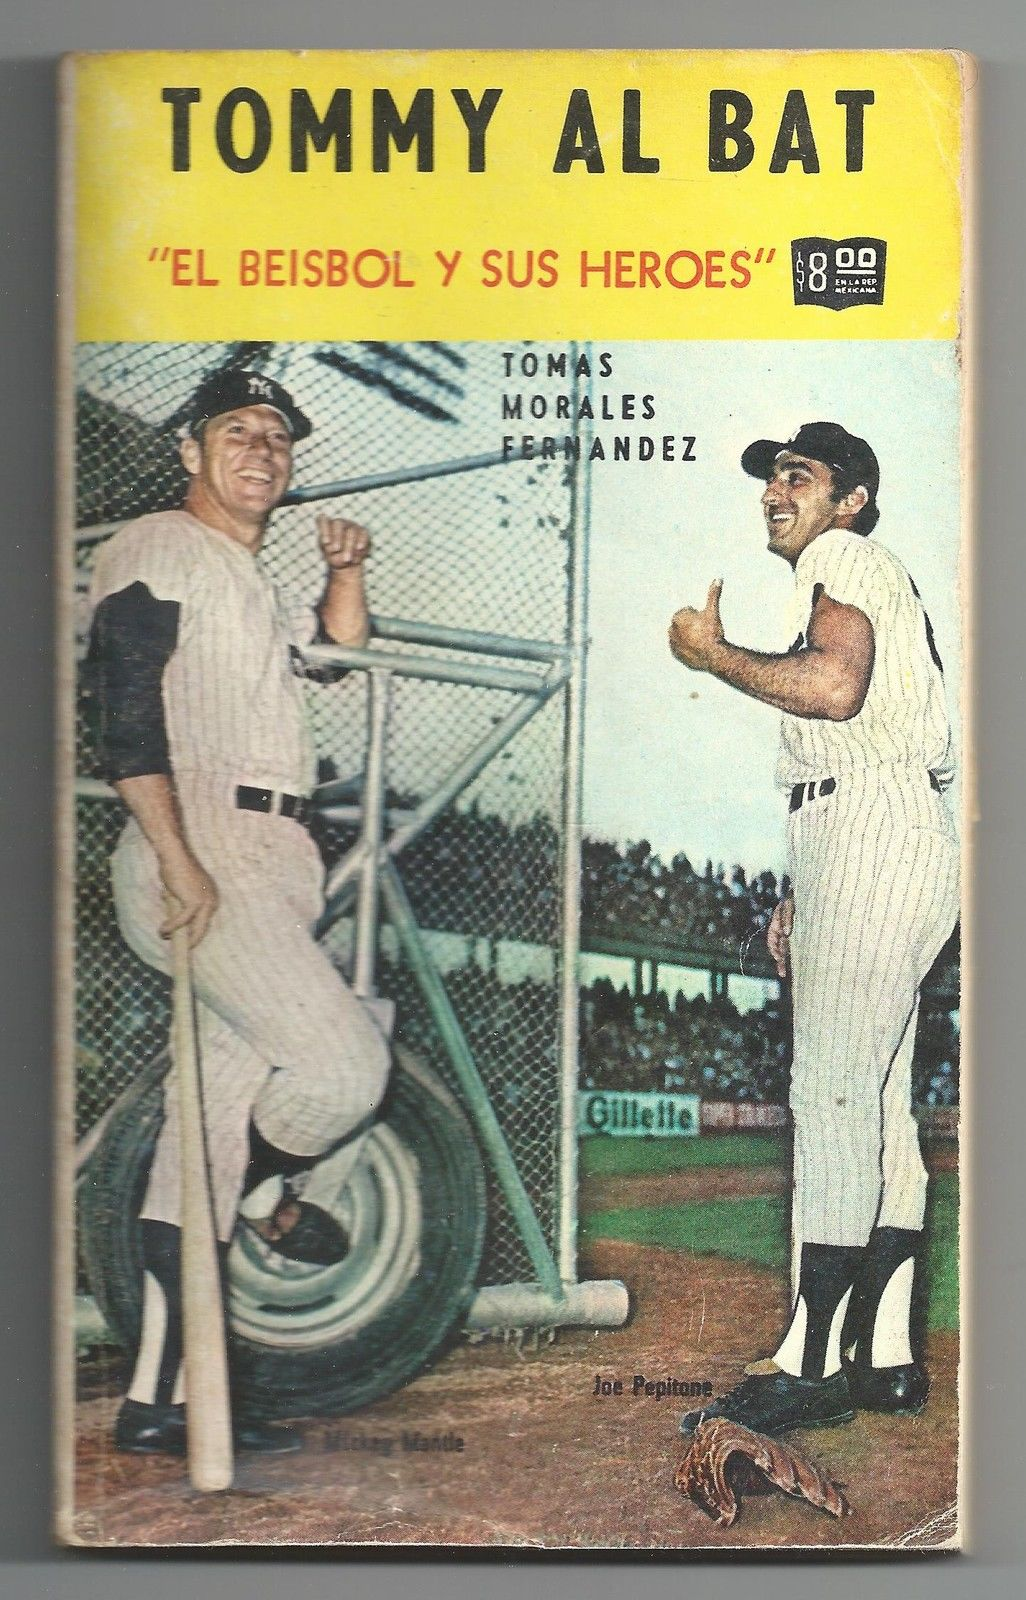 1968 baseball heroes, spanish, (aka, tommy at bat)